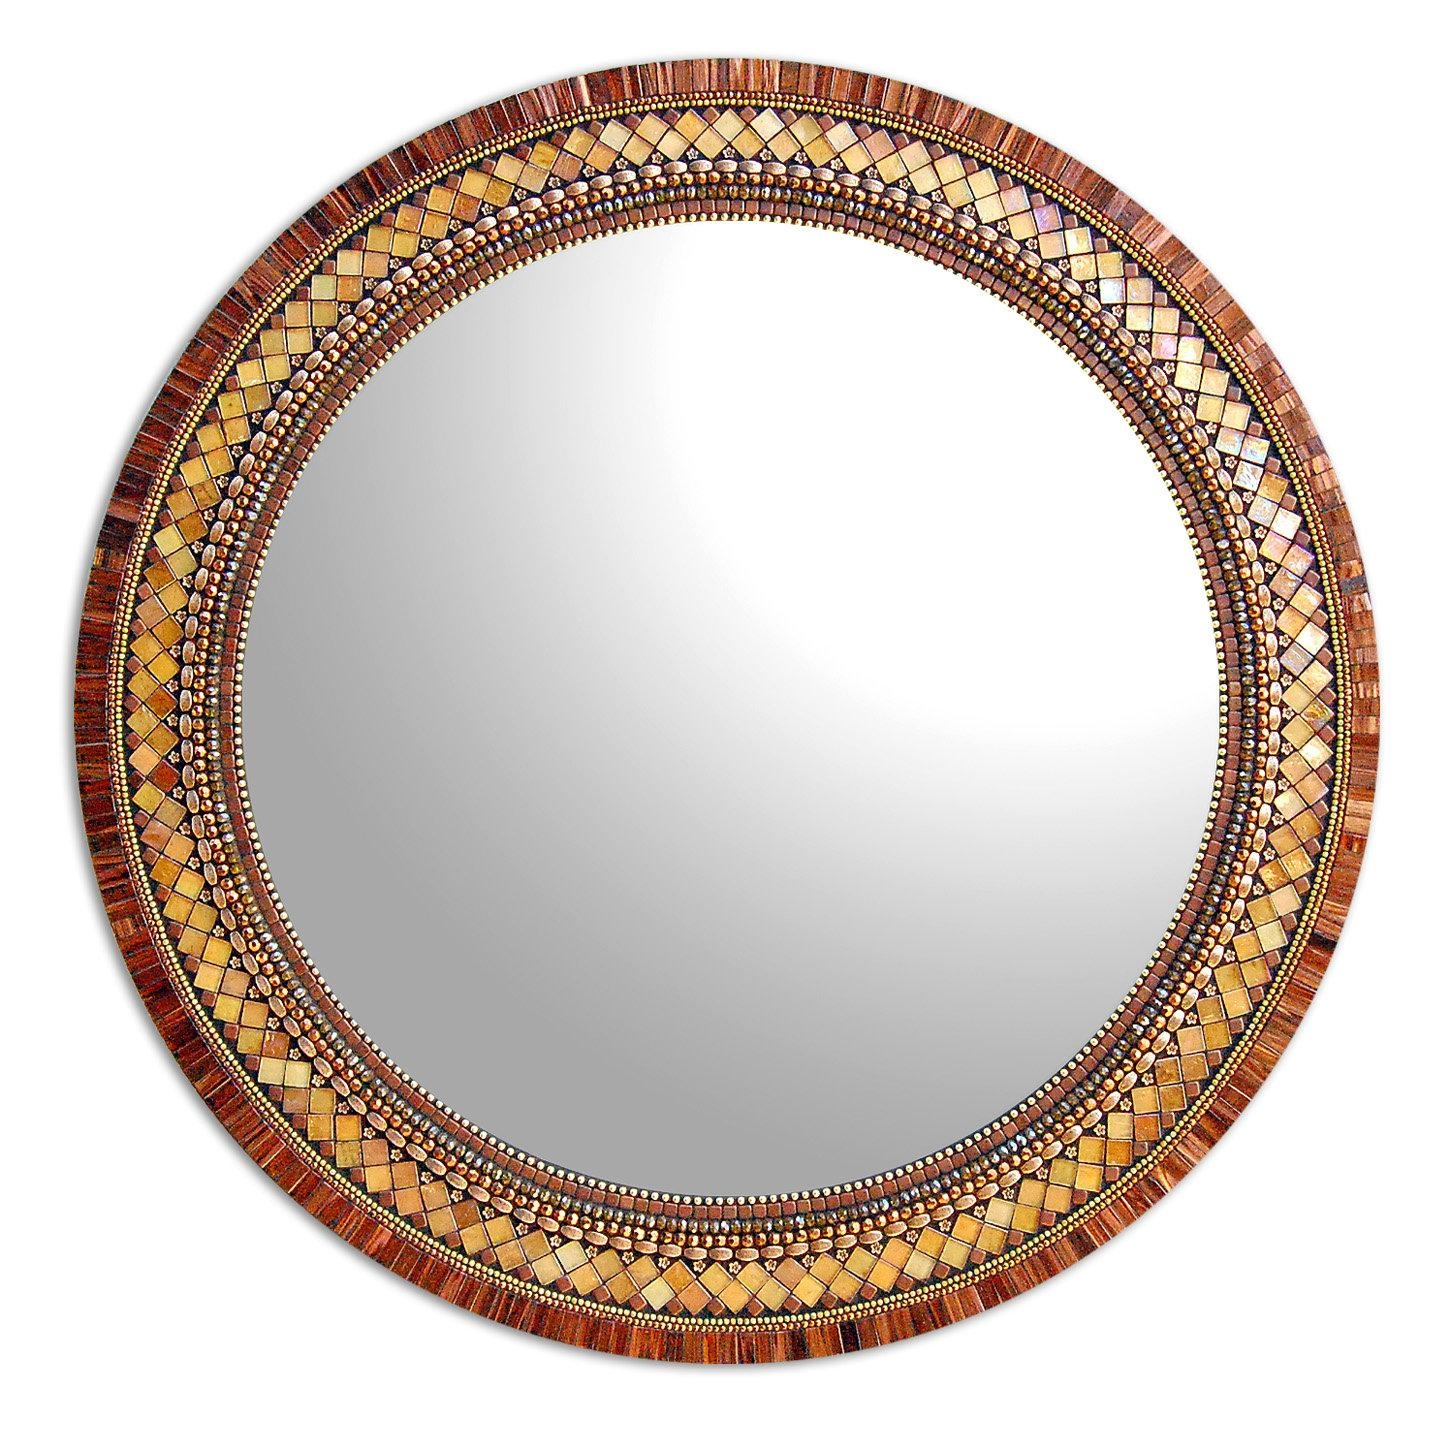 Original Art Mirrors Madenorth American Artists | Artful Home With Round Mosaic Mirrors (Image 14 of 20)